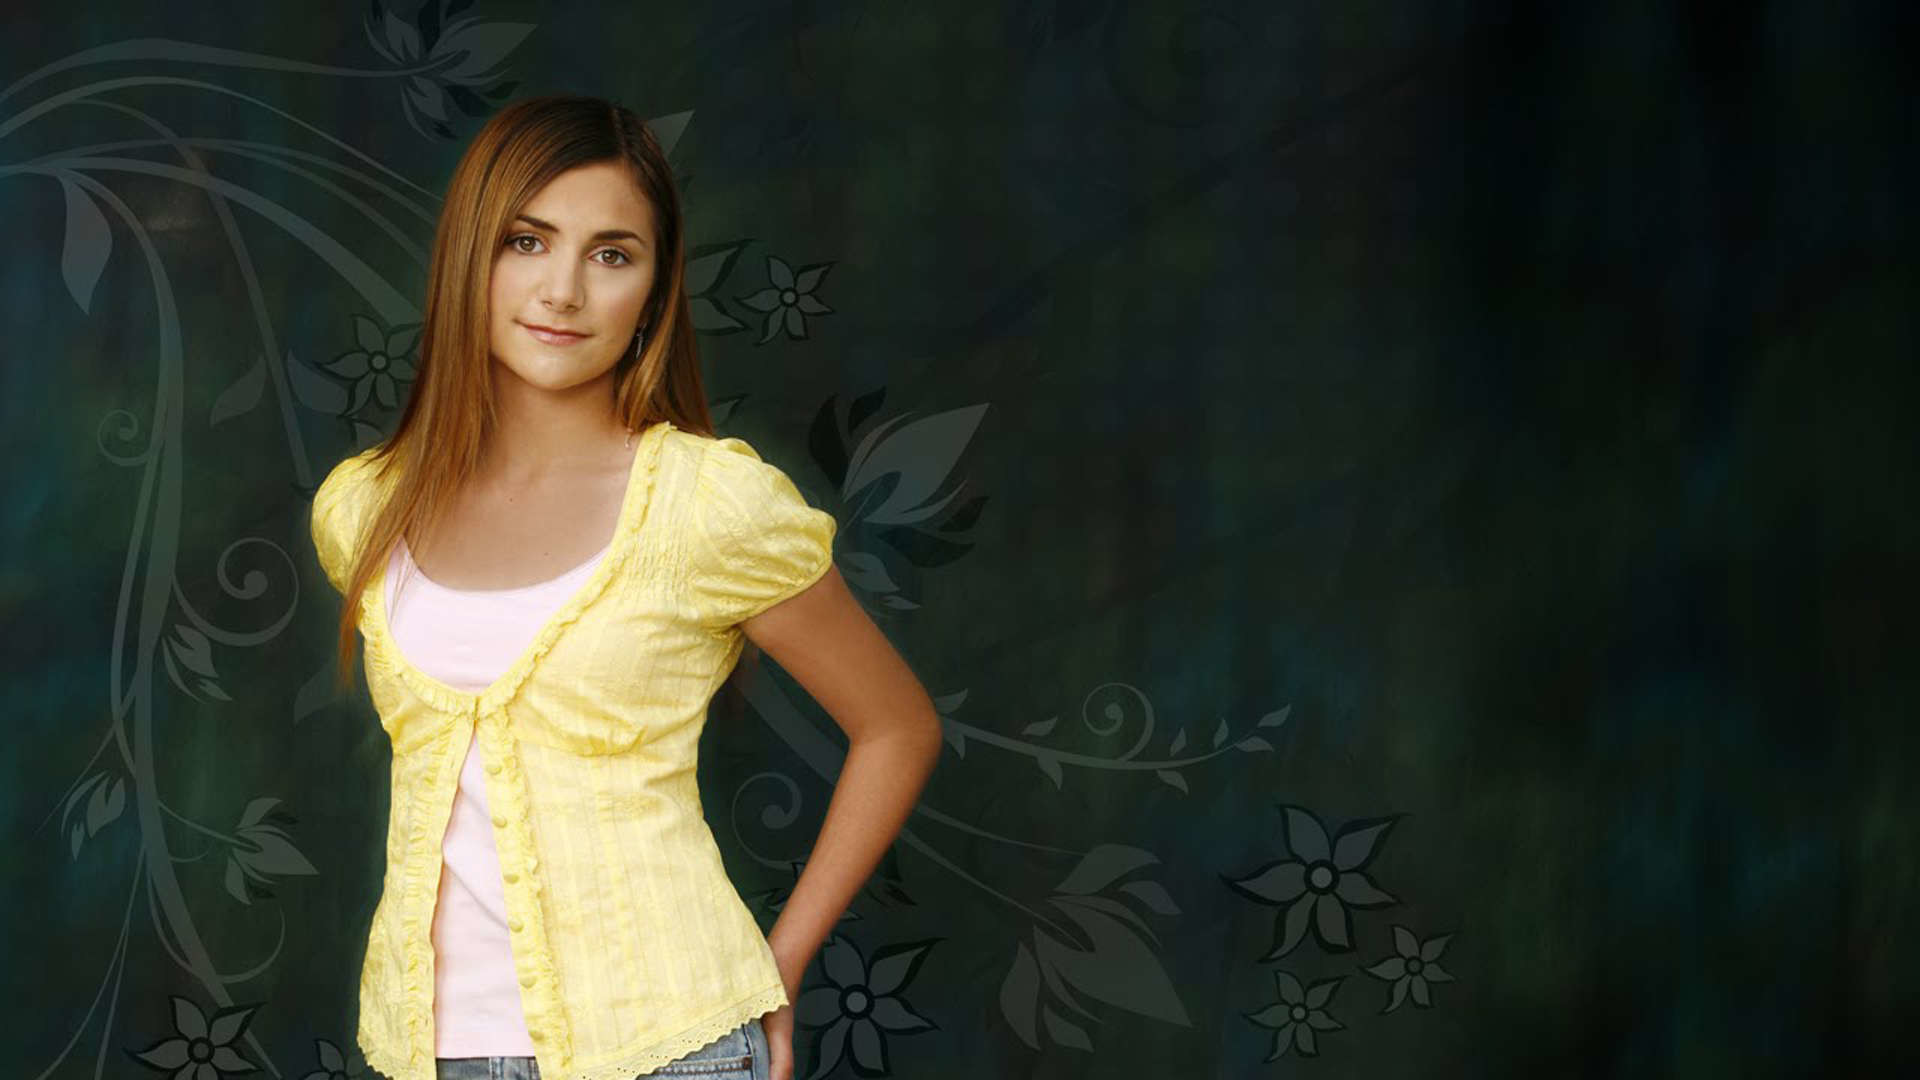 … alyson stoner wallpapers high resolution and quality download …